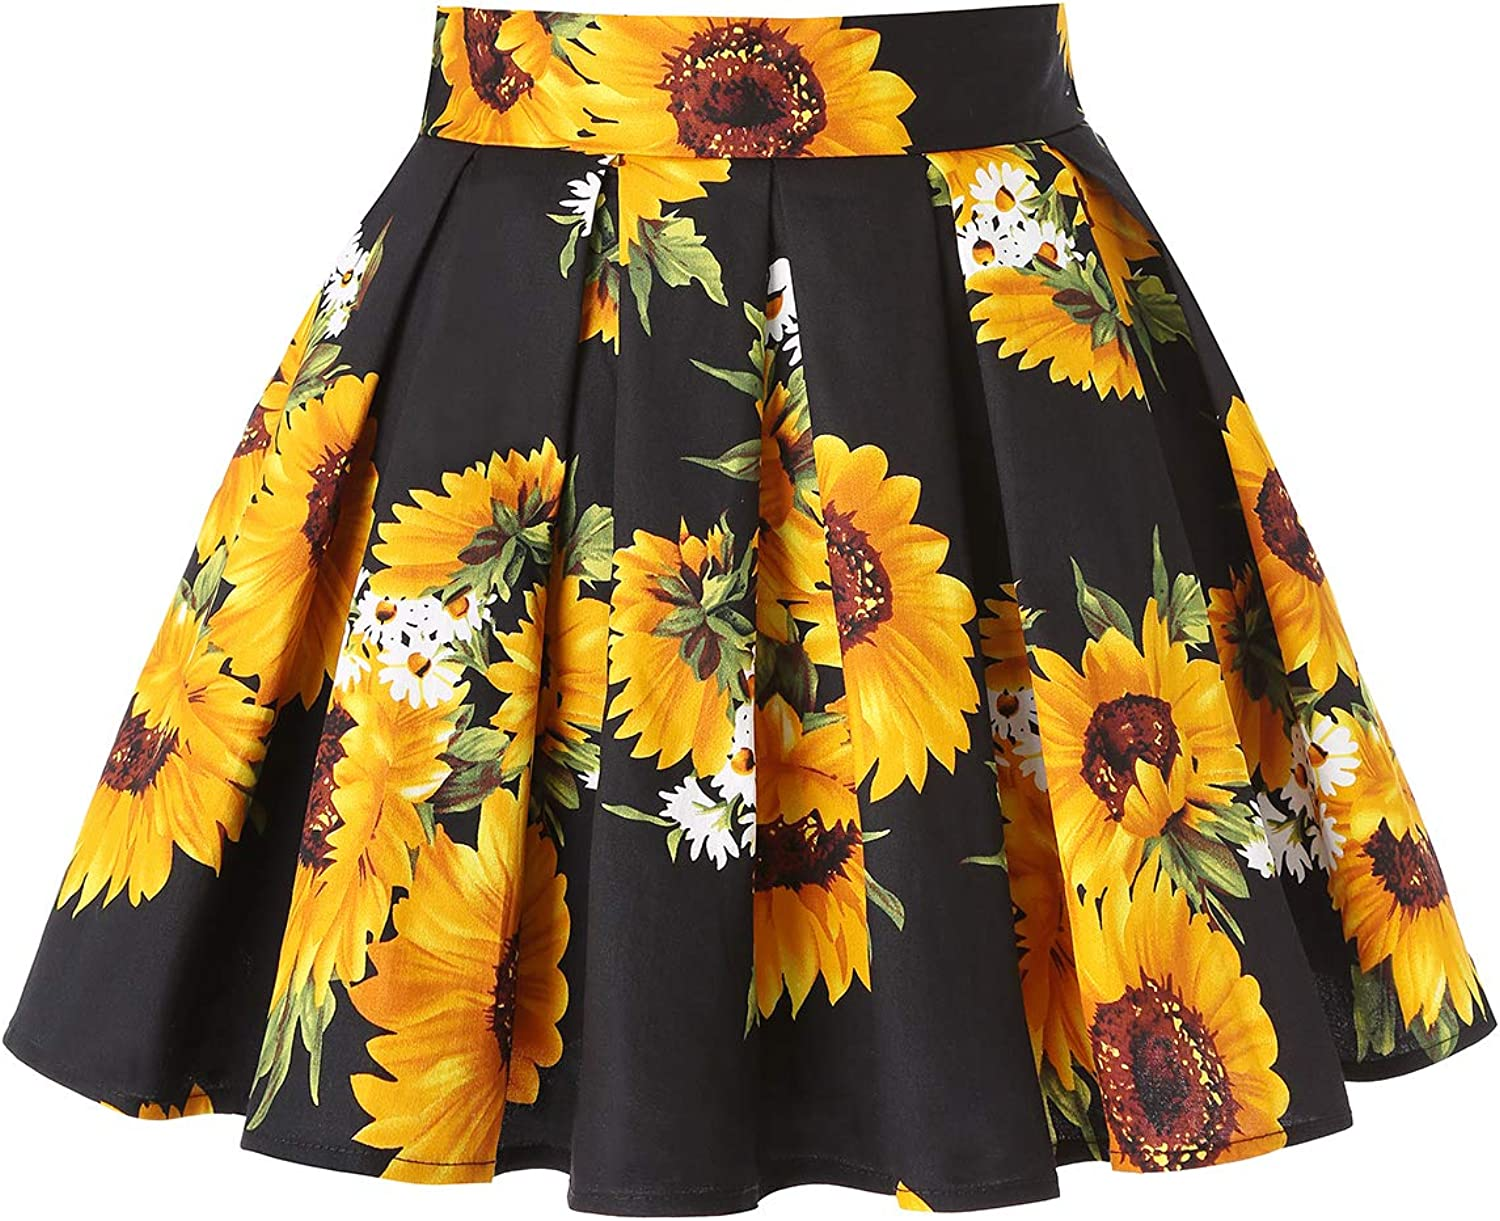 MINTLIMIT 1950's Vintage Pleated Skirt A-line Retro Floral Printed Mini Skirts with Pockets